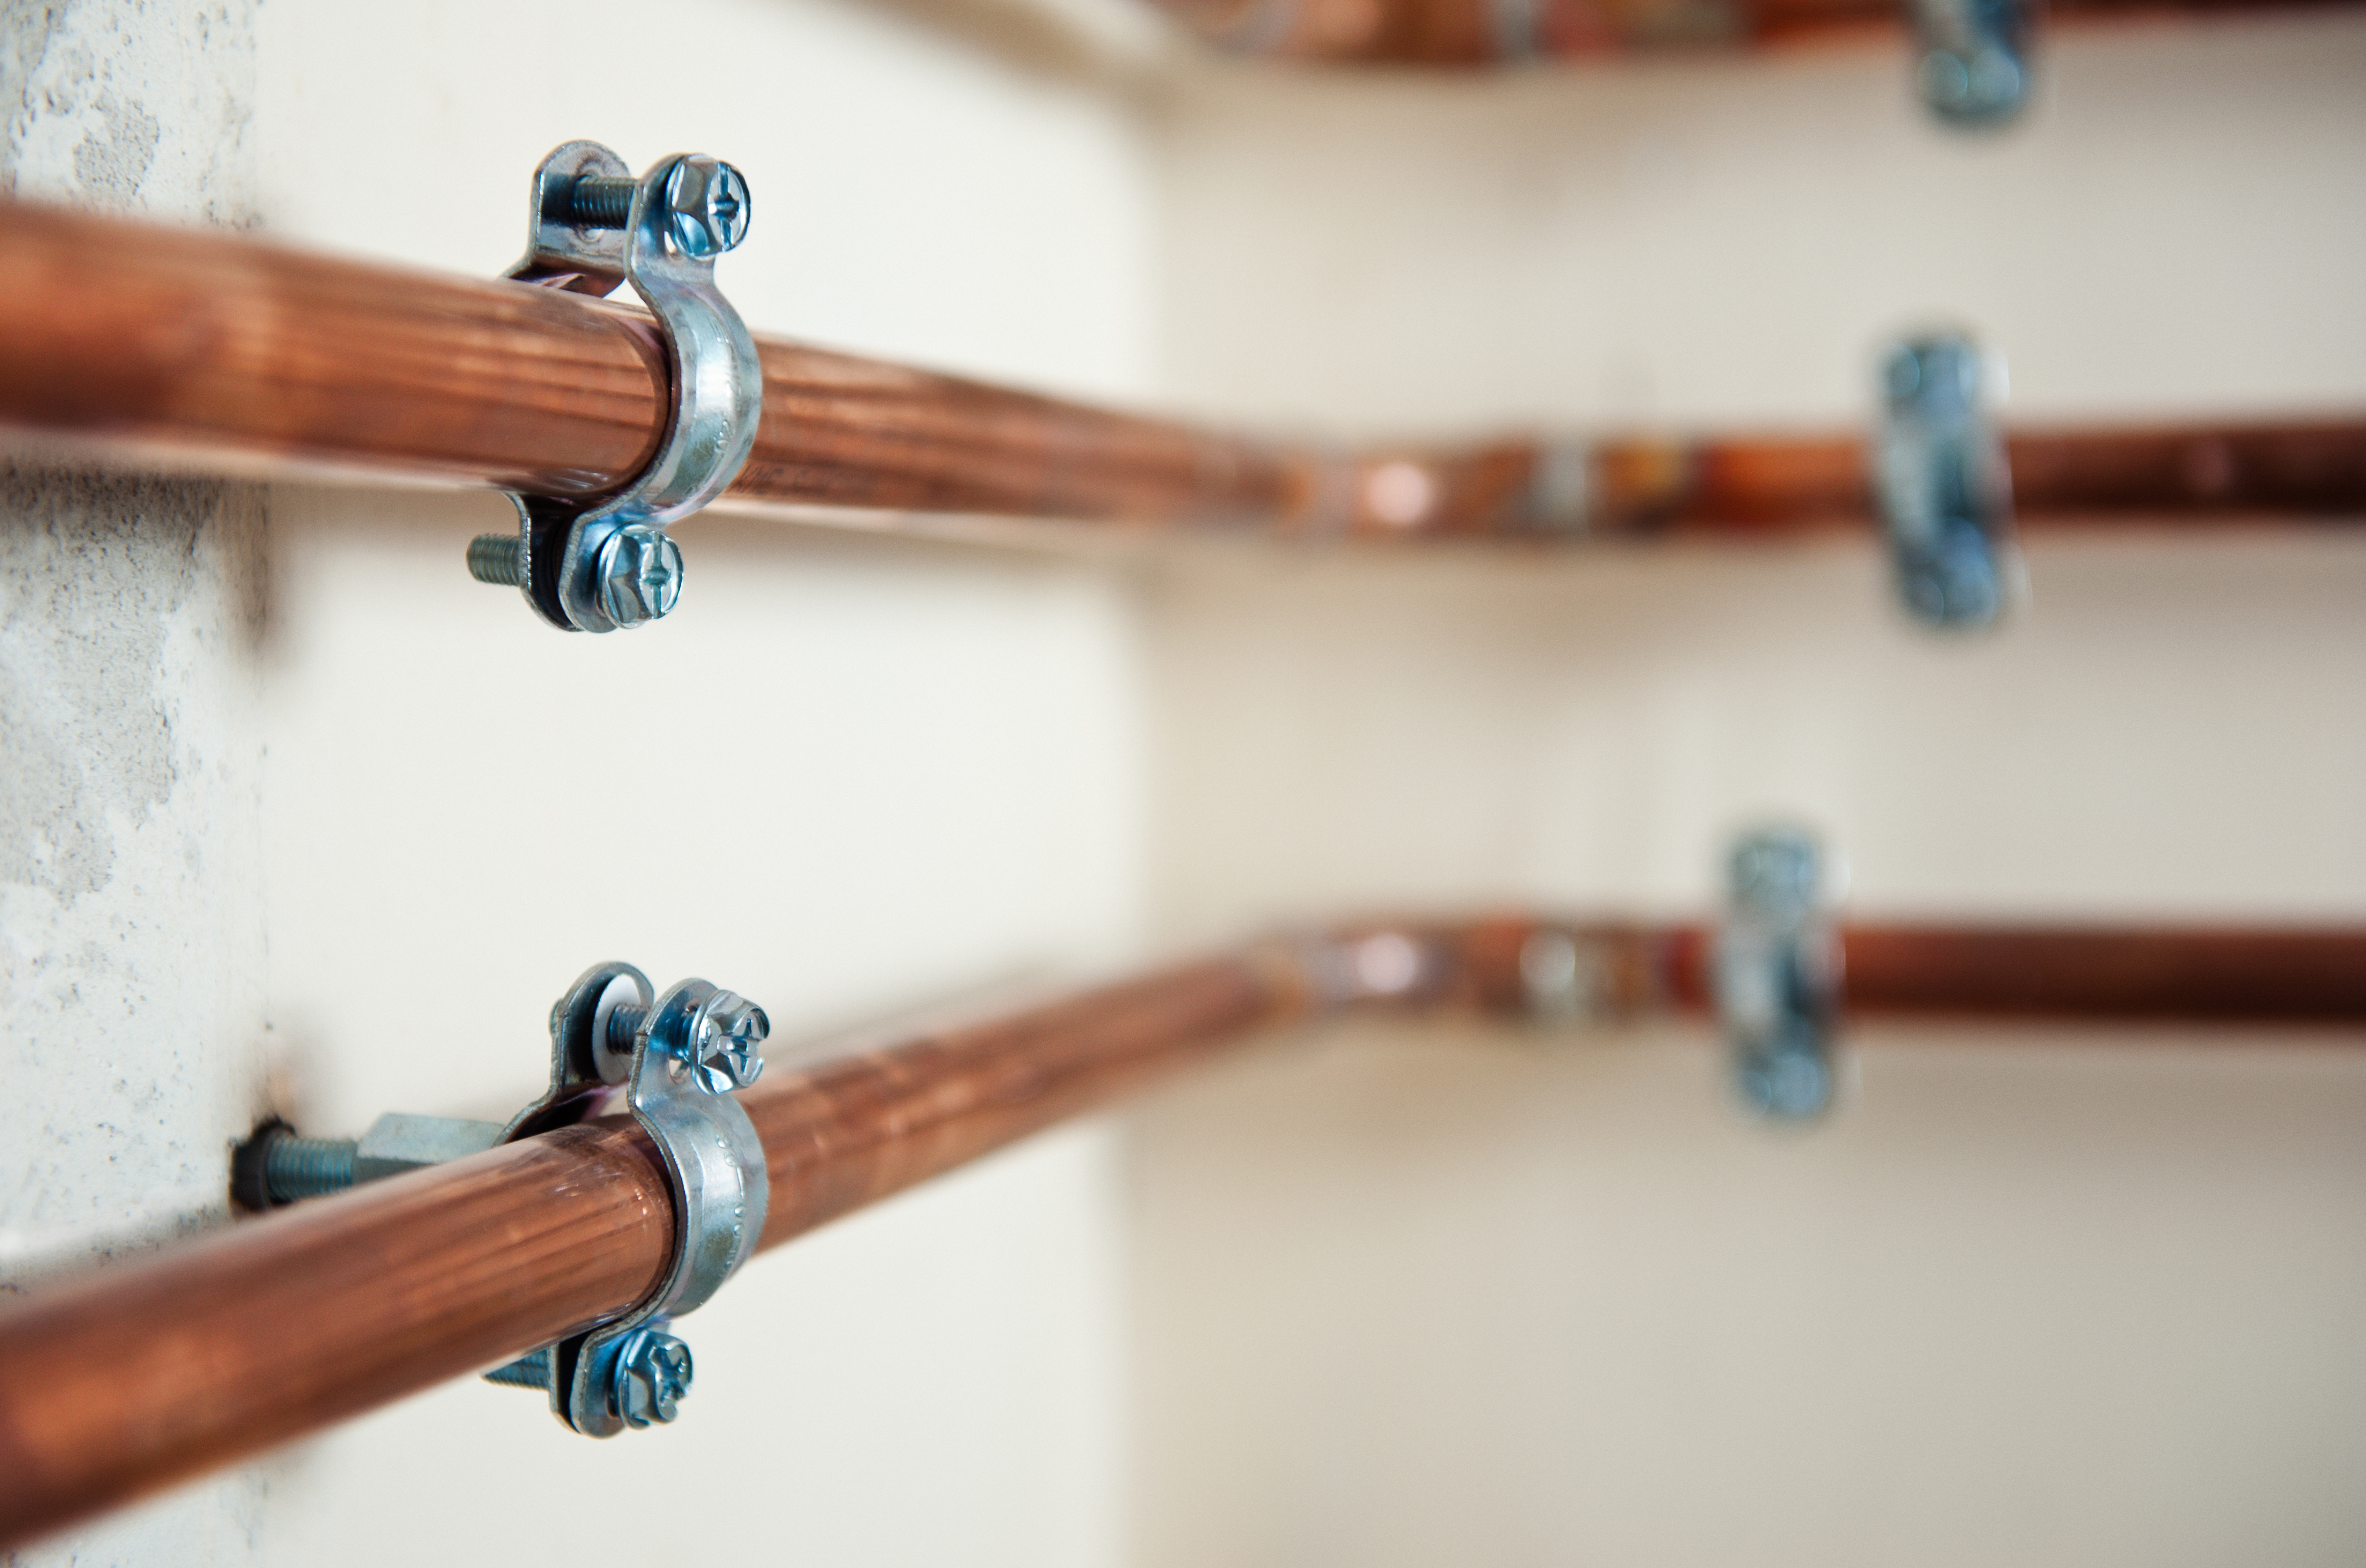 How to Seal Leaks Around Compression Fittings for Copper